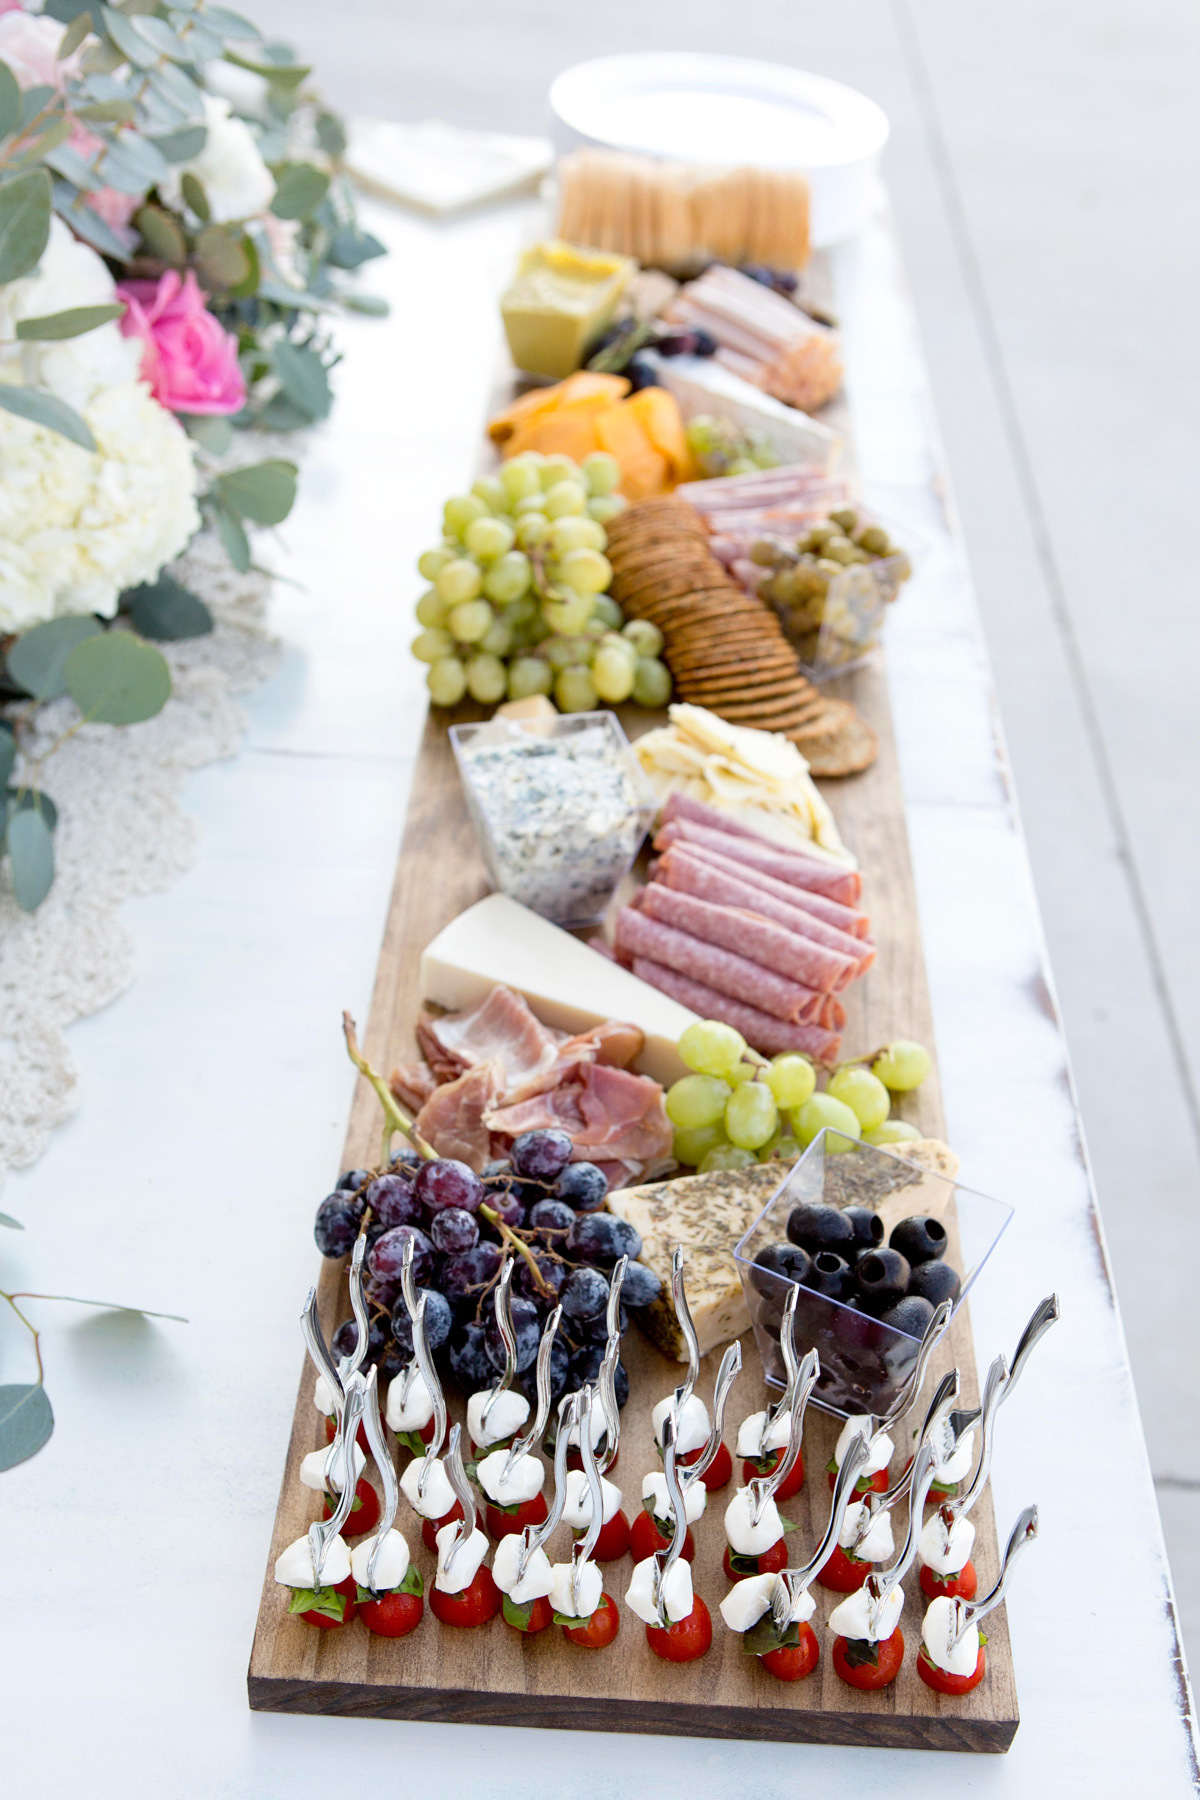 Wedding Food Ideas How To Create A Charcuterie And Cheese Board